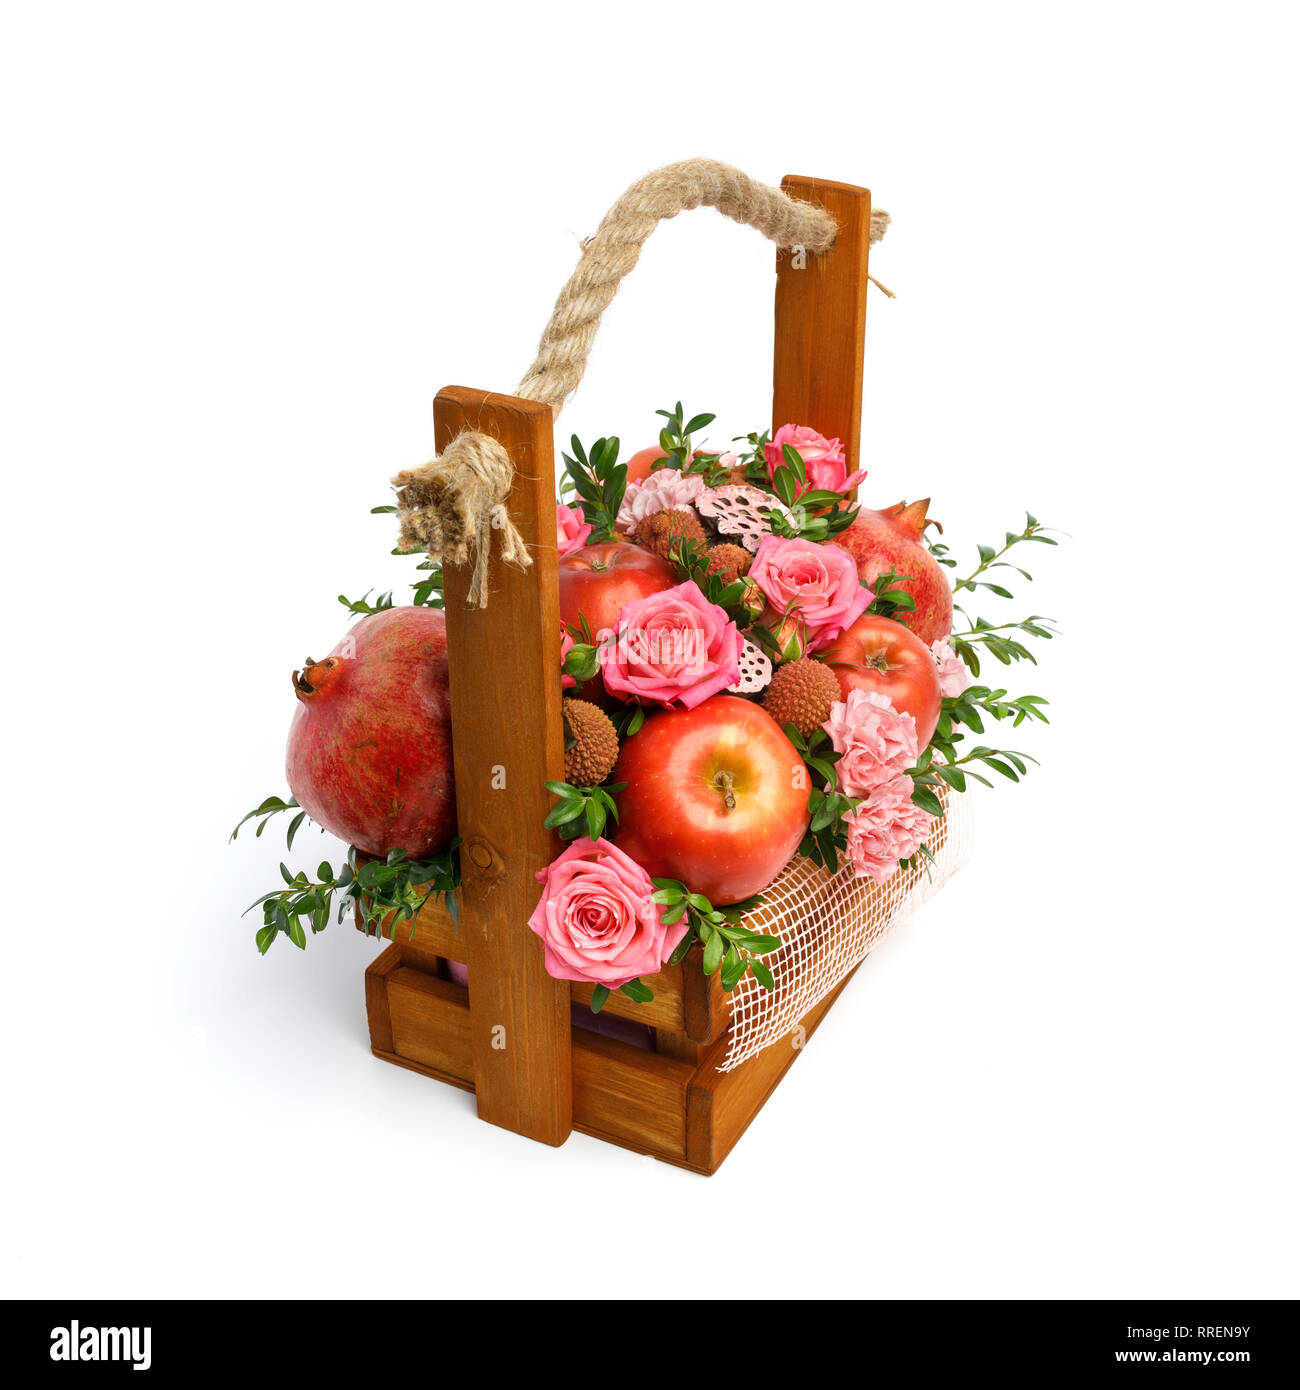 Unique Gift Wooden Box With Flowers And Fruits Isolated On